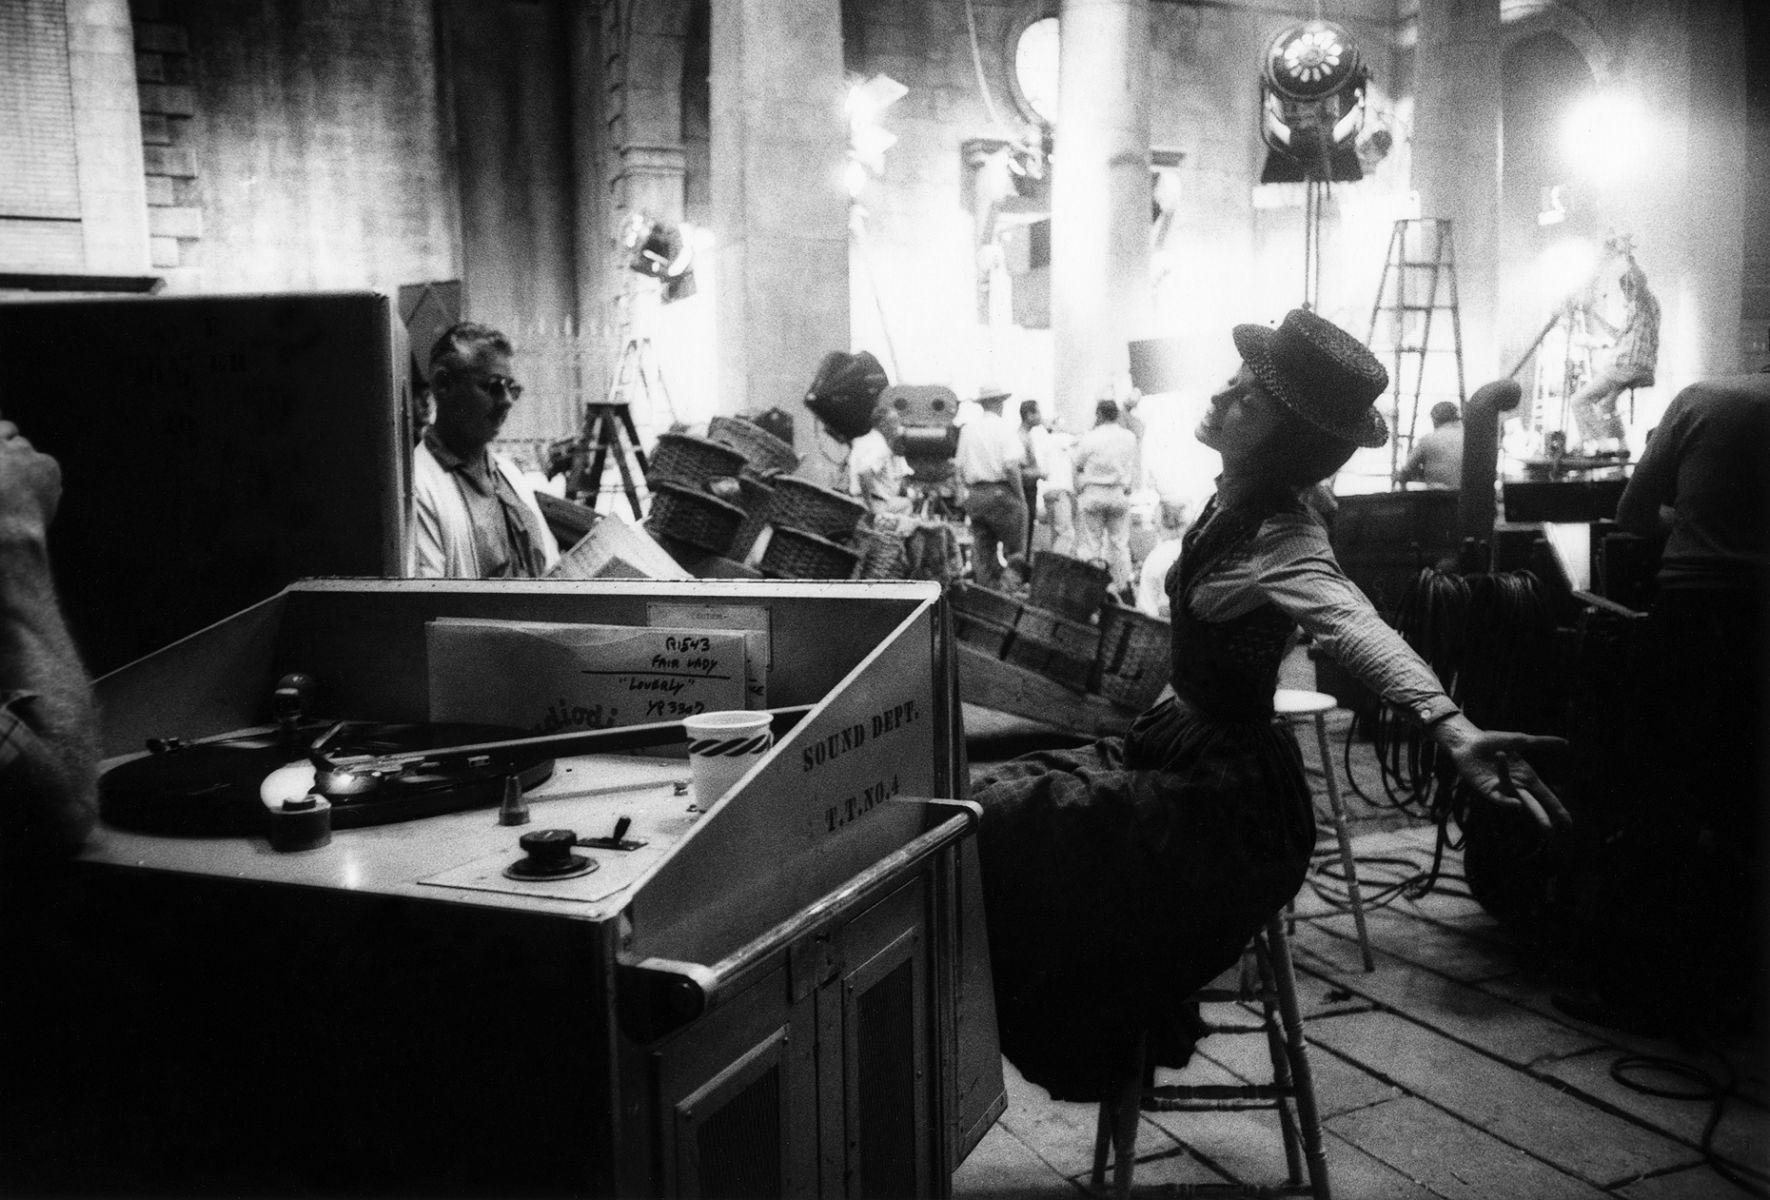 Audrey Hepburn rehearses the Loverly number with playback on the Warner Bros. set of My Fair Lady, 1963.